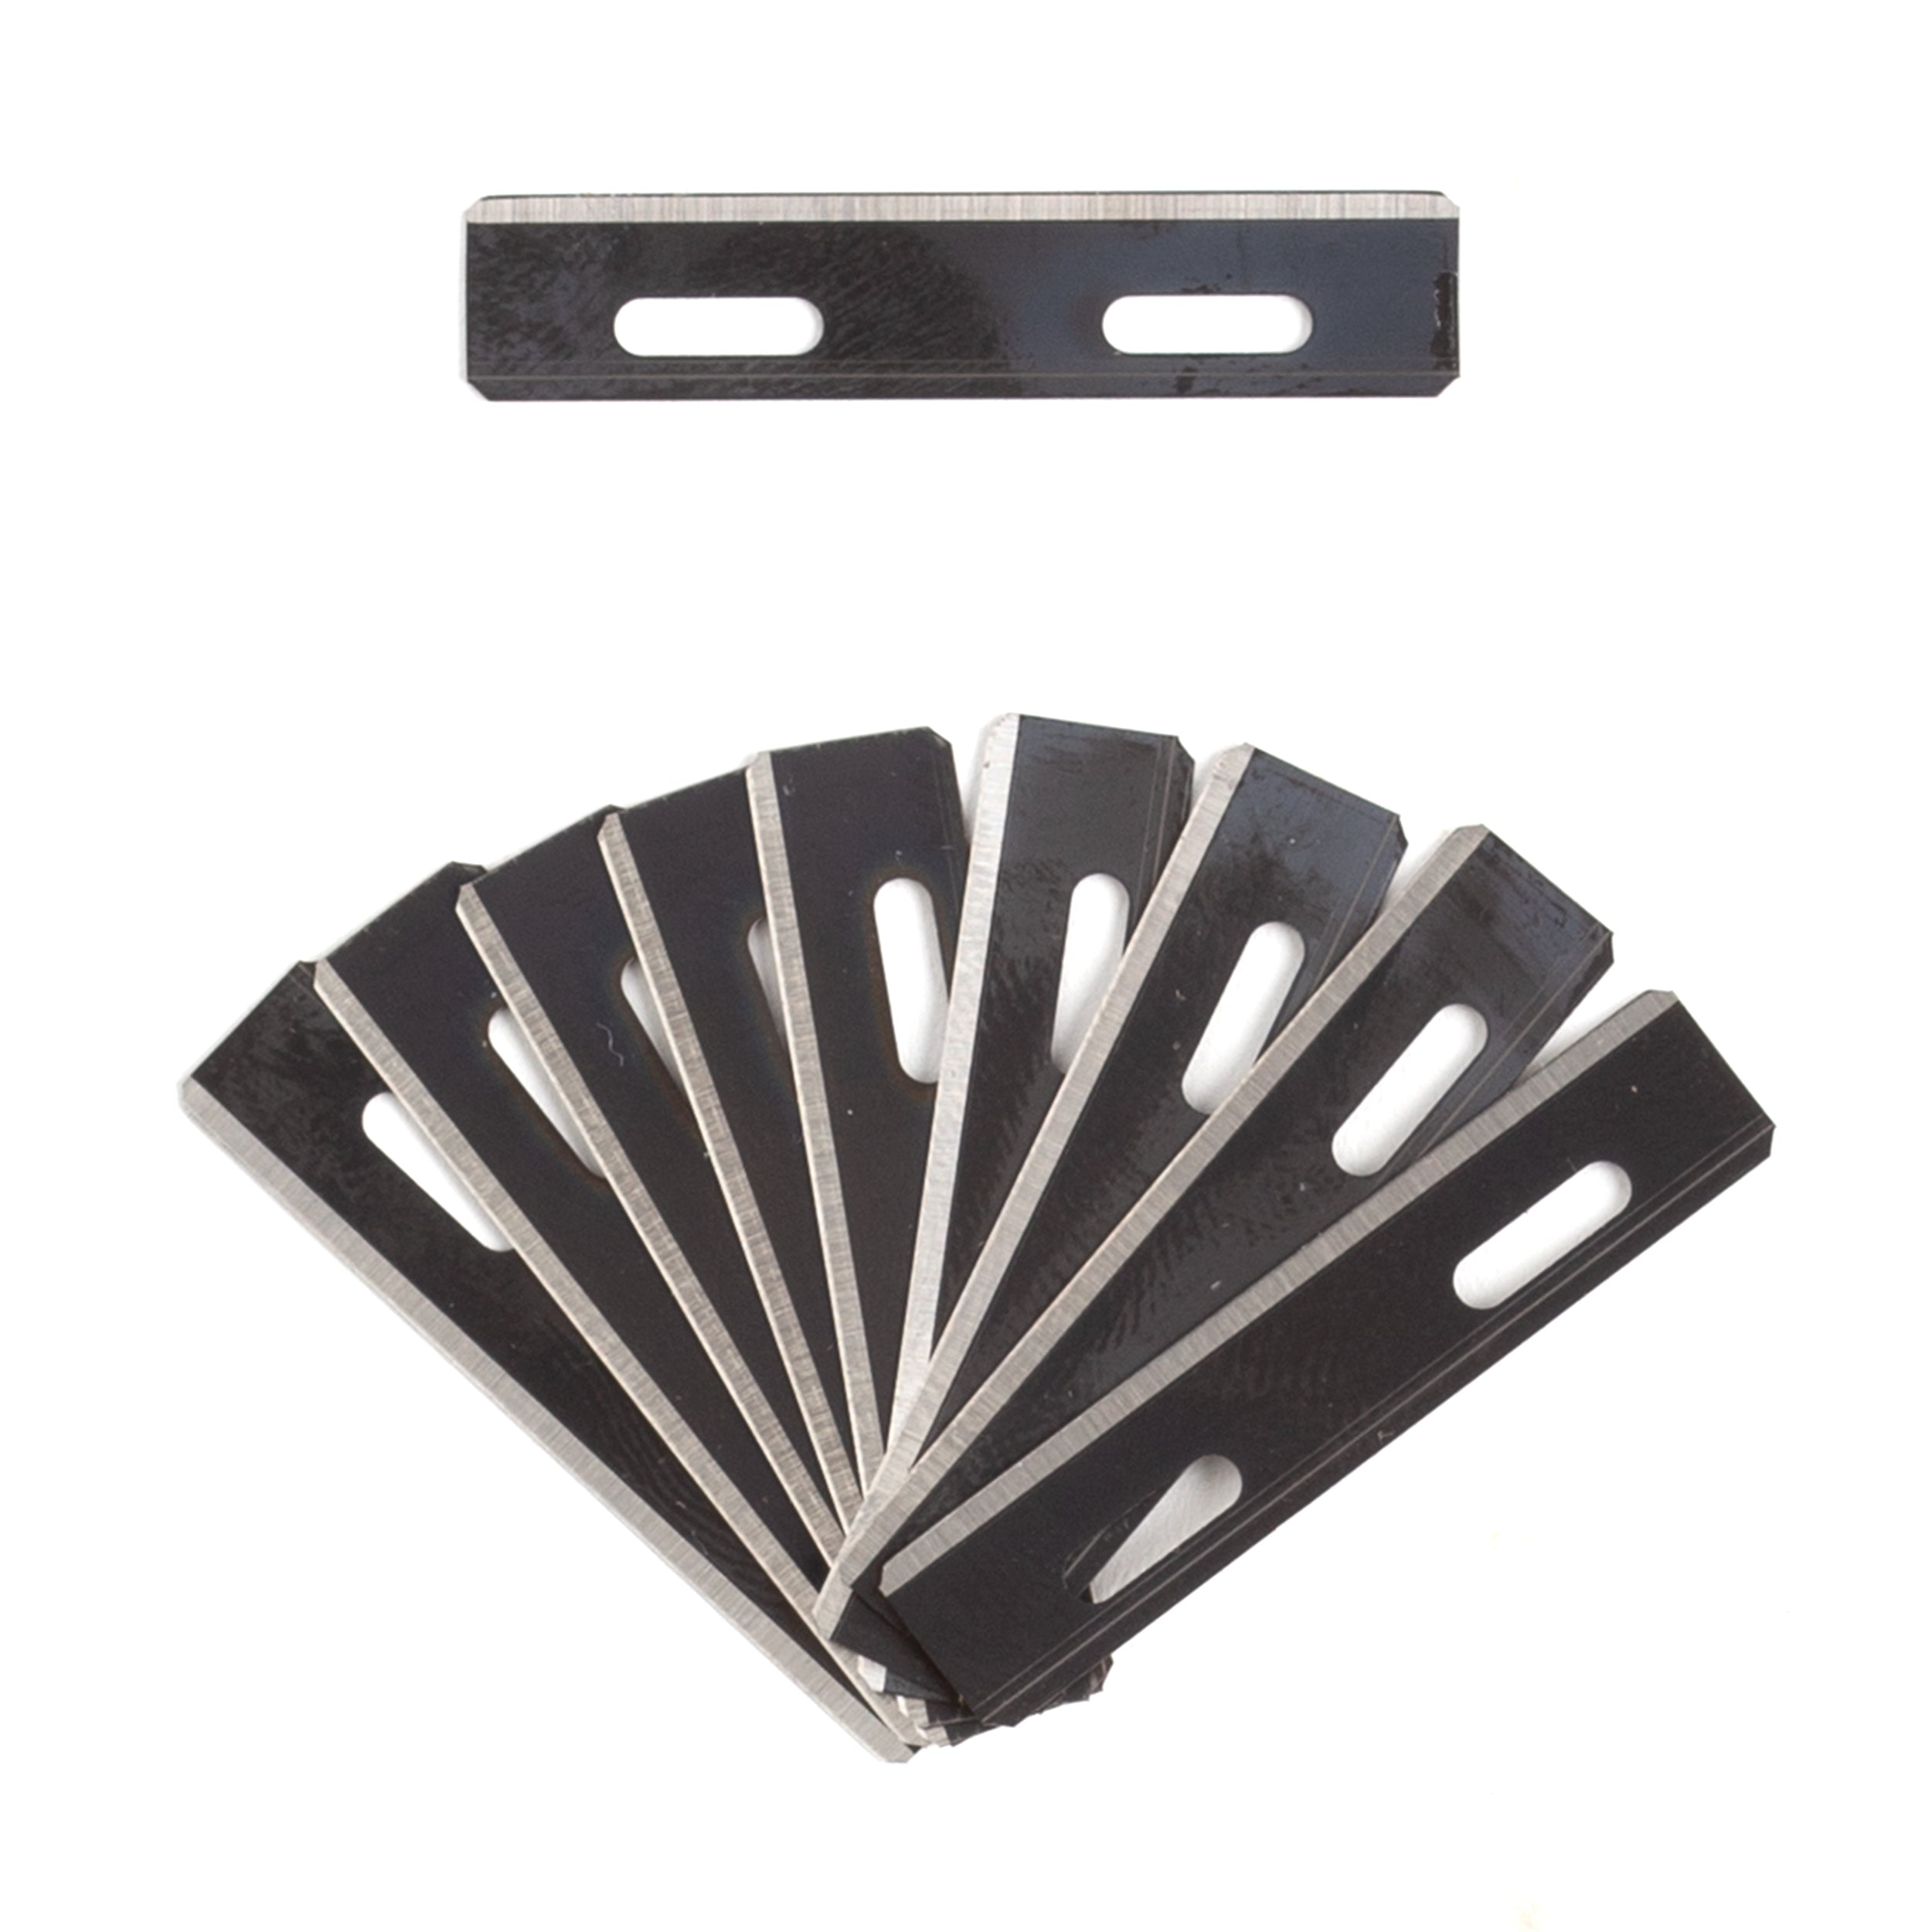 Replacement Blades 10 Pack